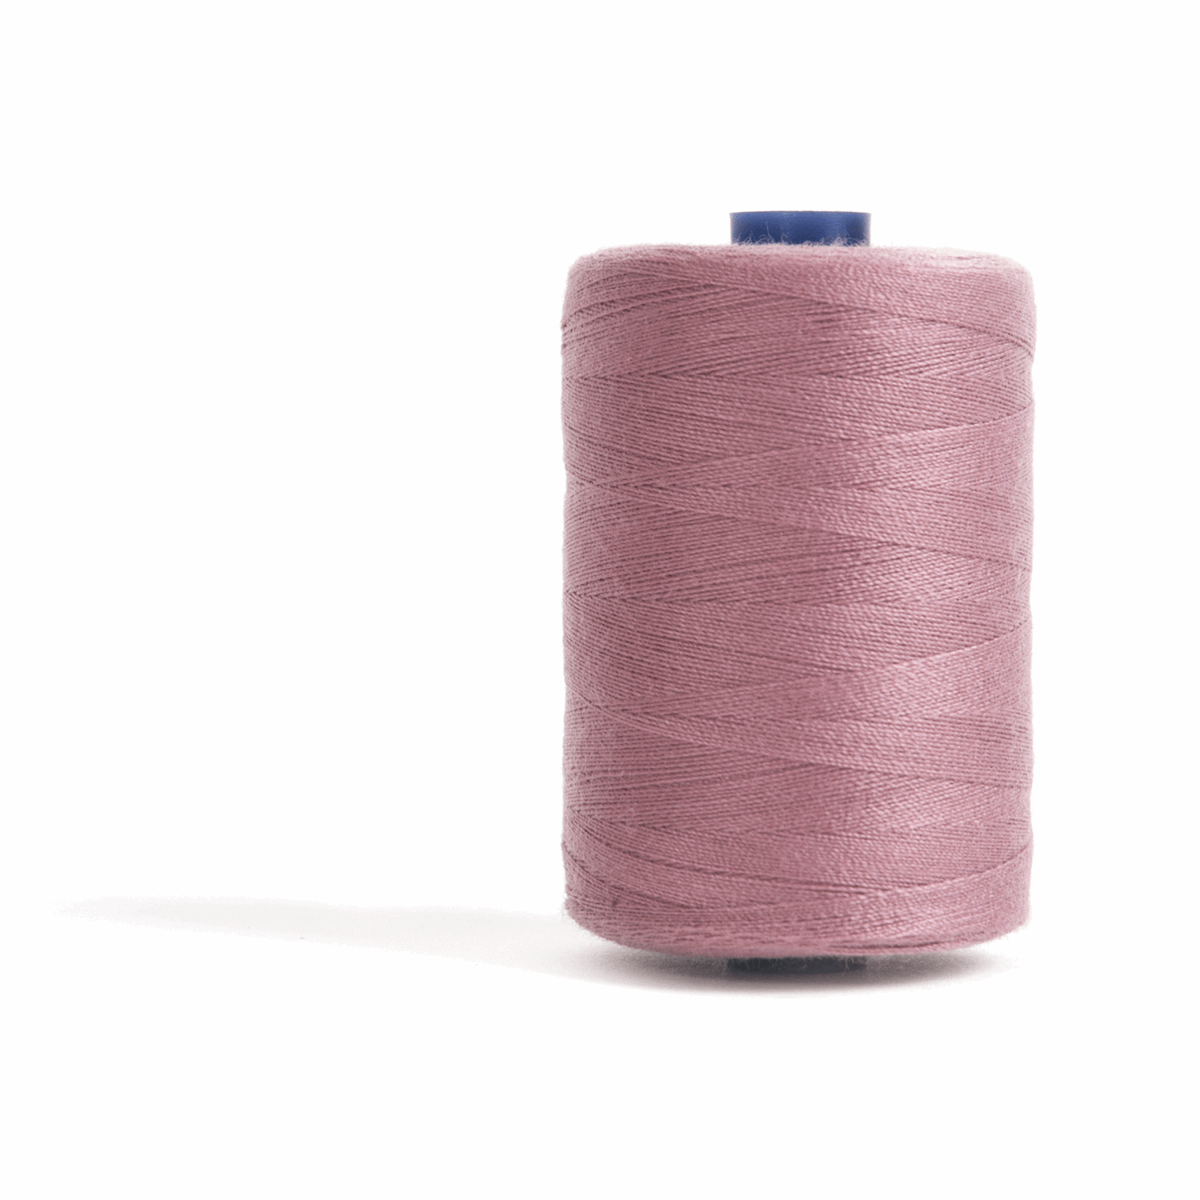 Thread 1000m Extra Large - Rose - for Sewing and Overlocking